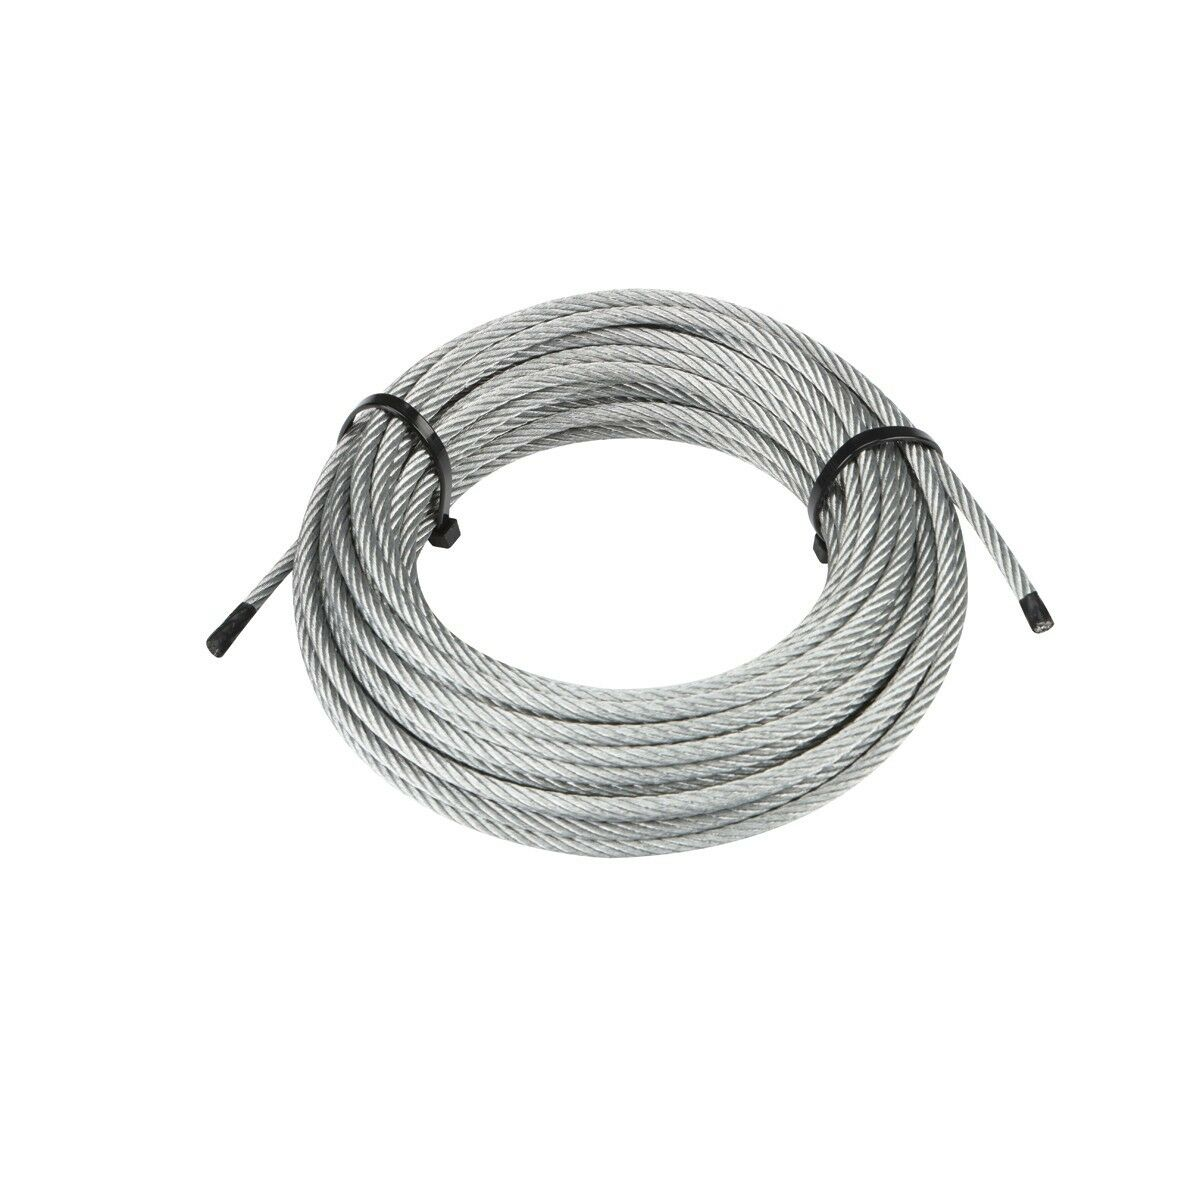 100 Foot X 3mm Galvanized Braided Wire Rope Cable Aircraft Grade ...